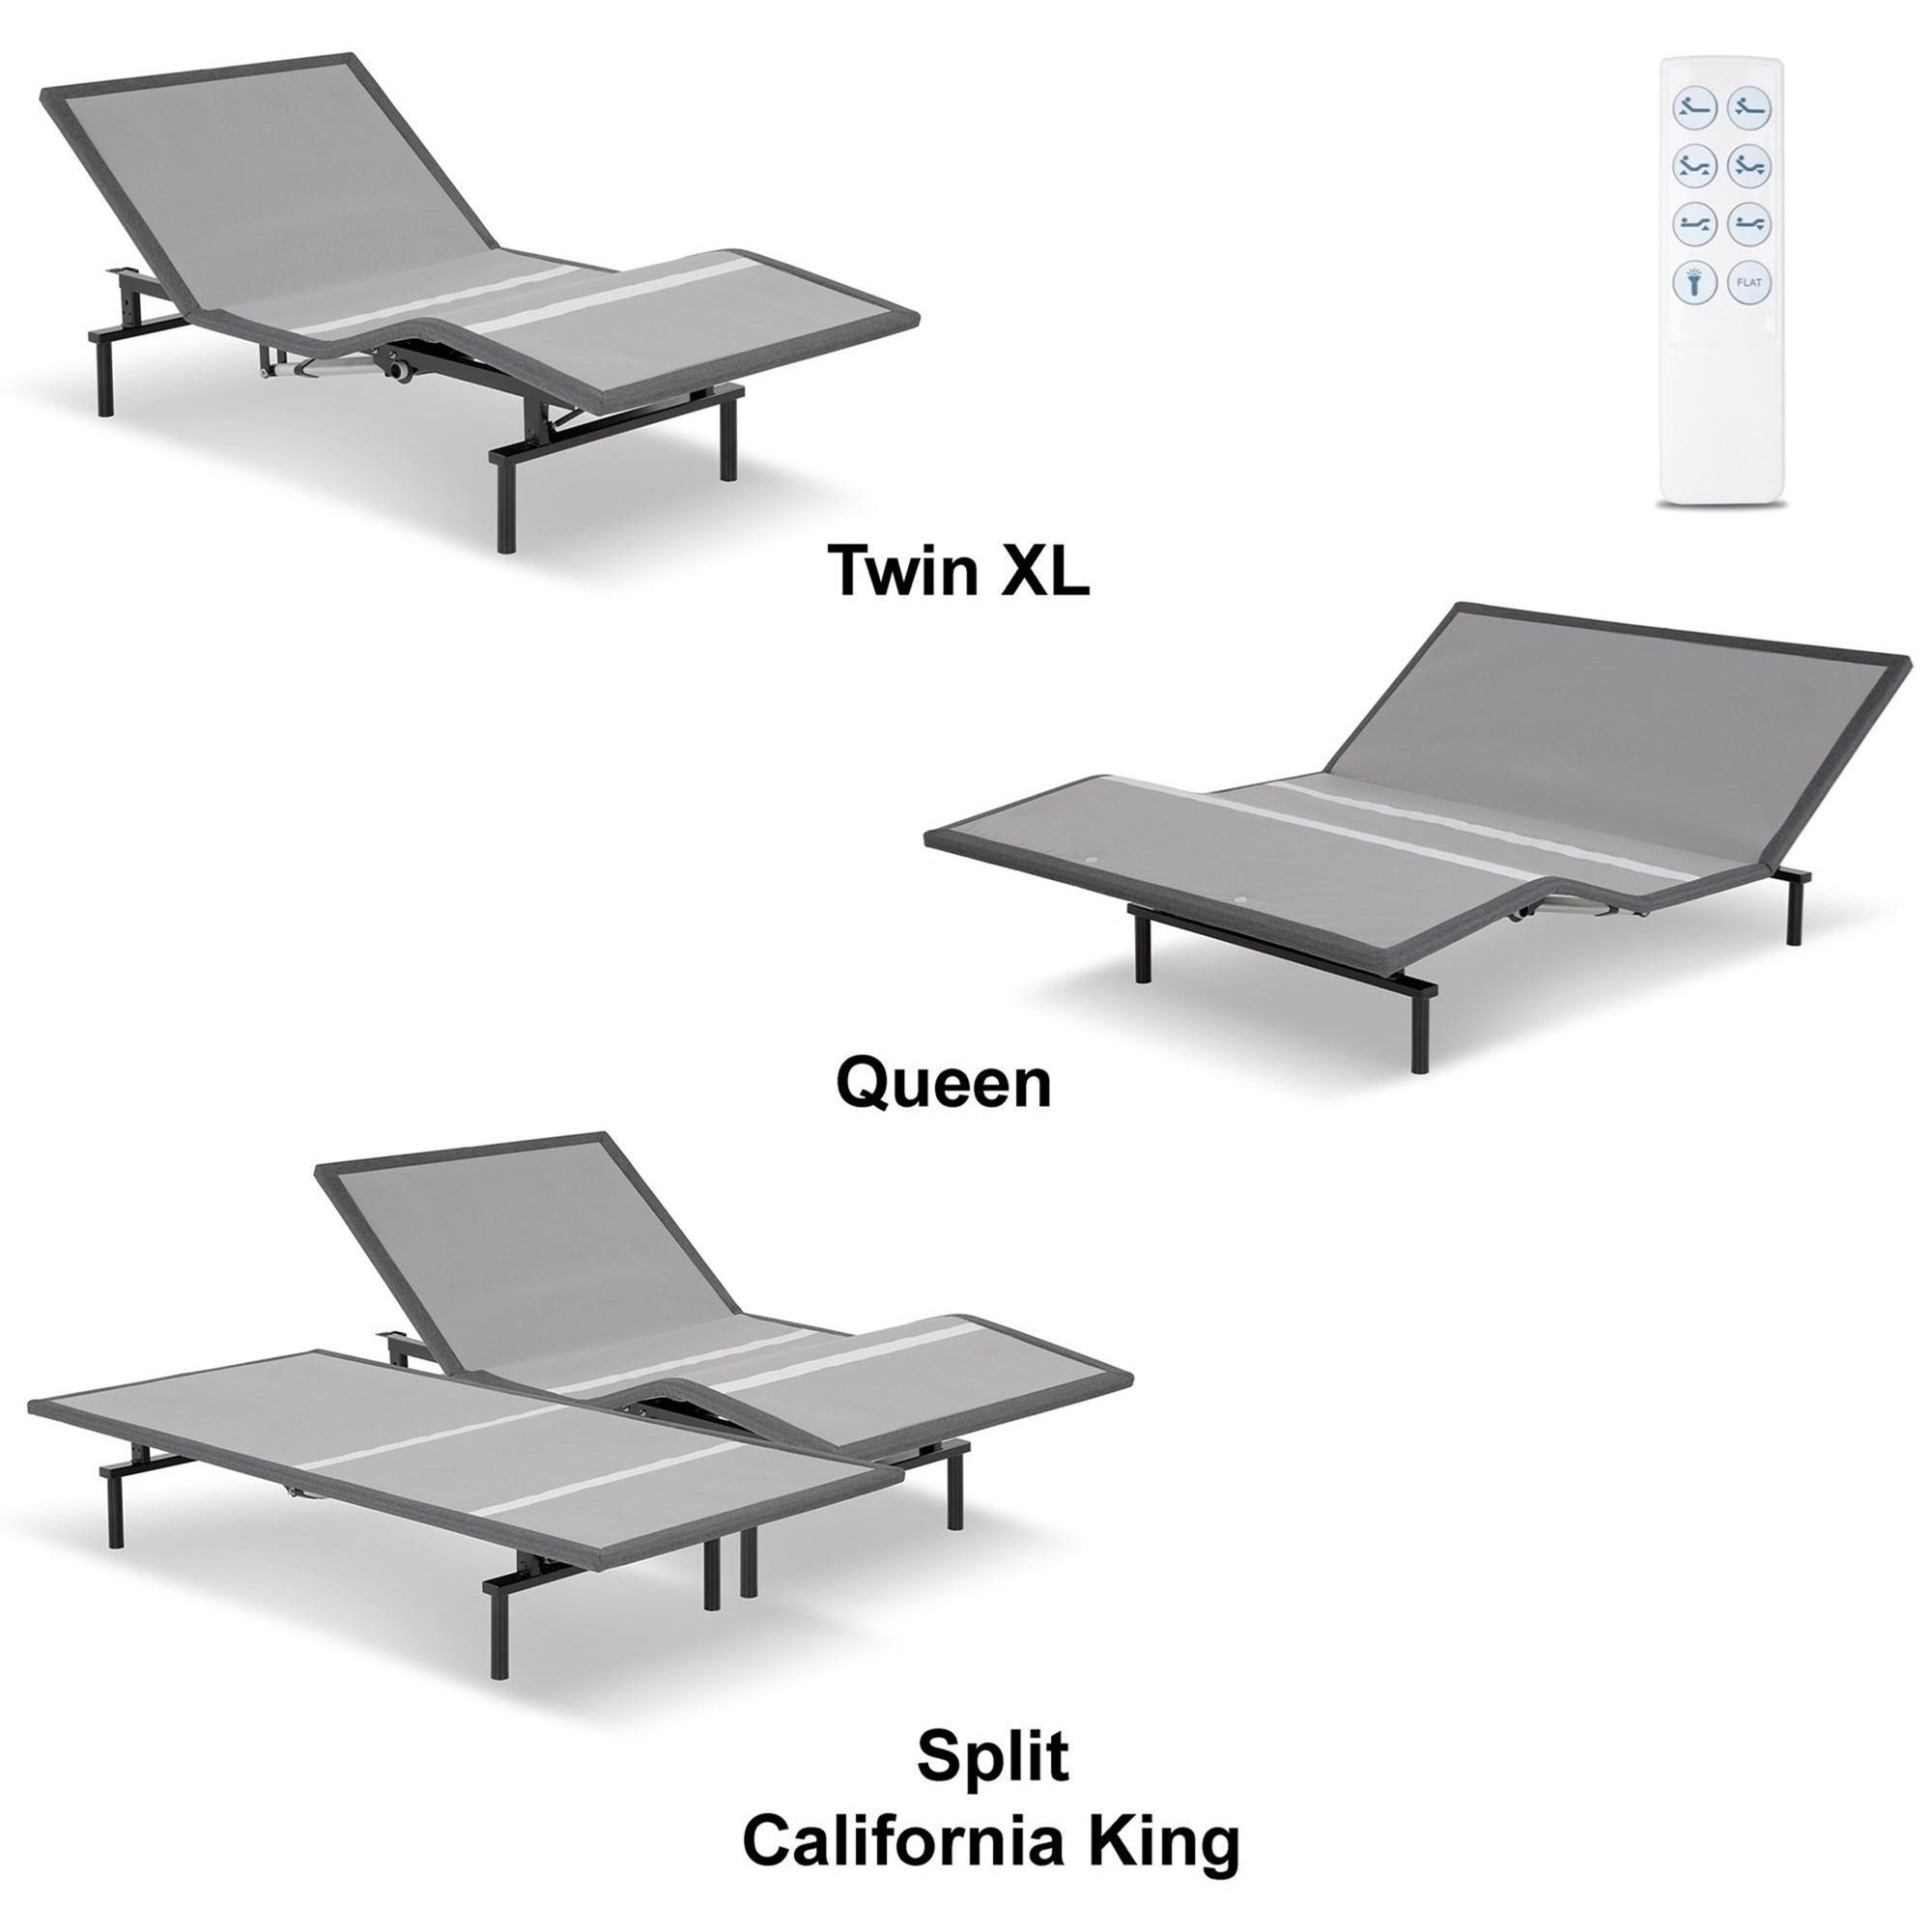 split king raven lowprofile adjustable bed base with movement and wireless flashlight remote - Split King Adjustable Bed